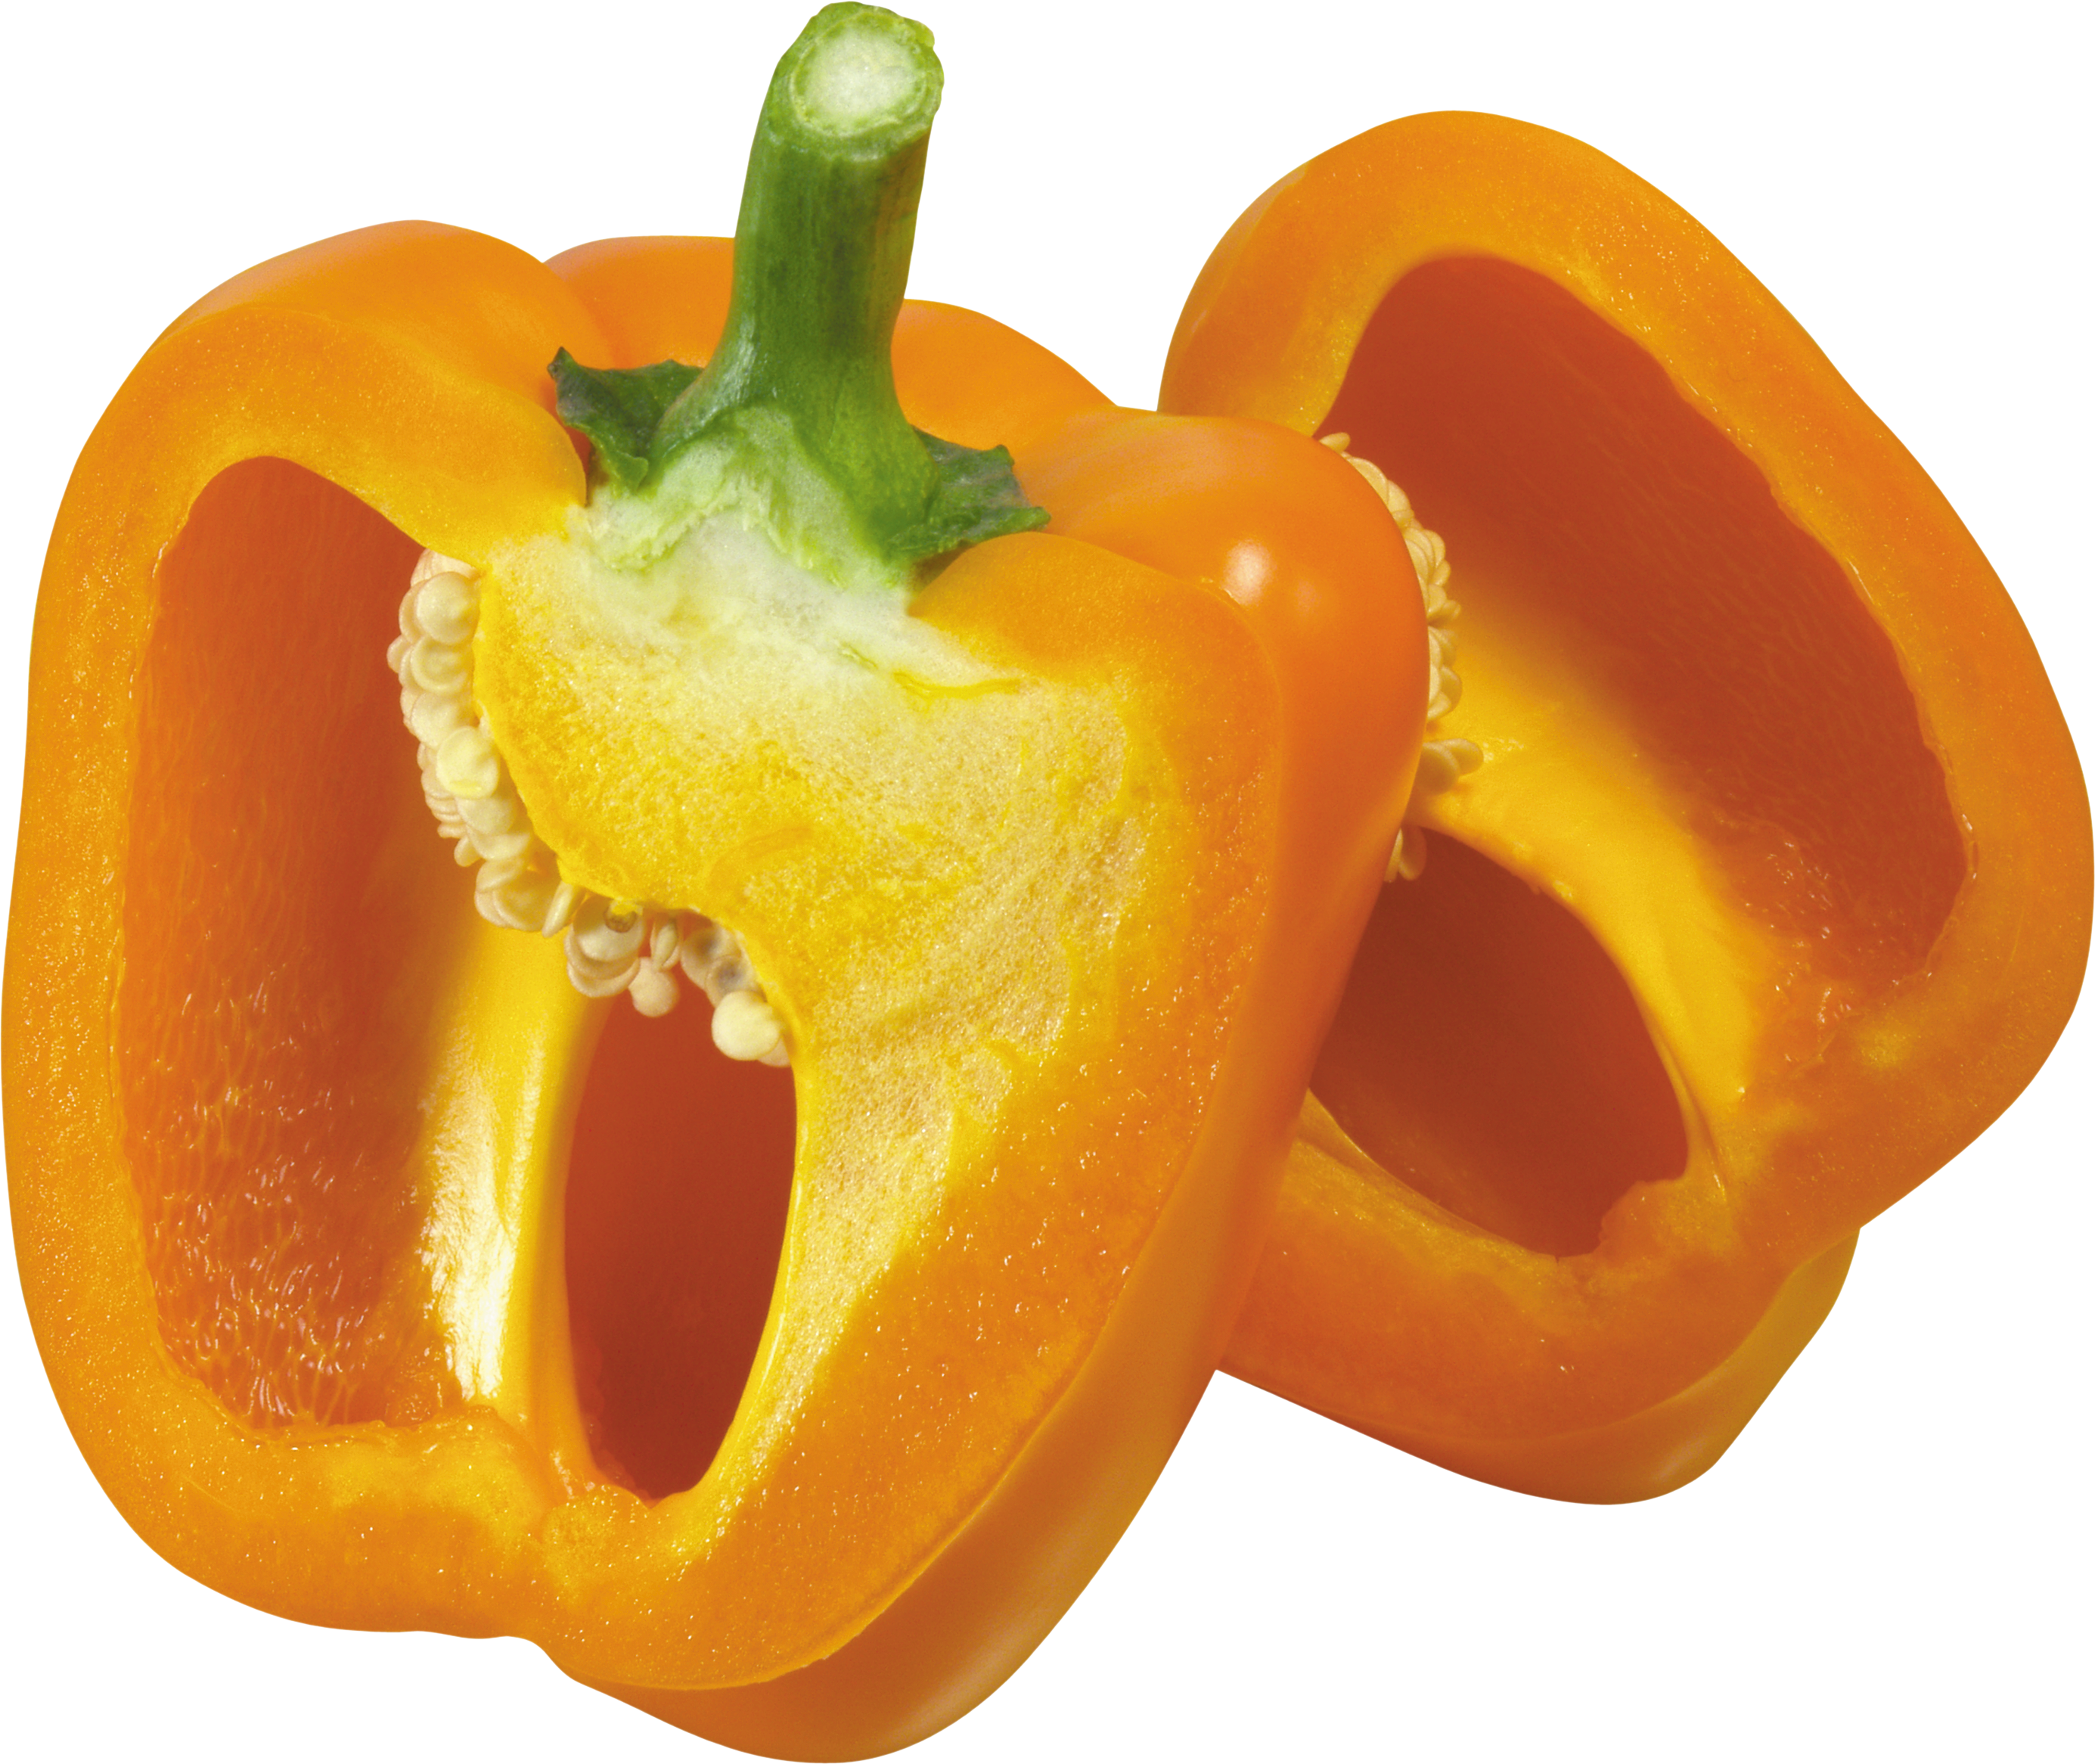 clip art transparent download Peppers drawing yellow pepper.  orange bell png